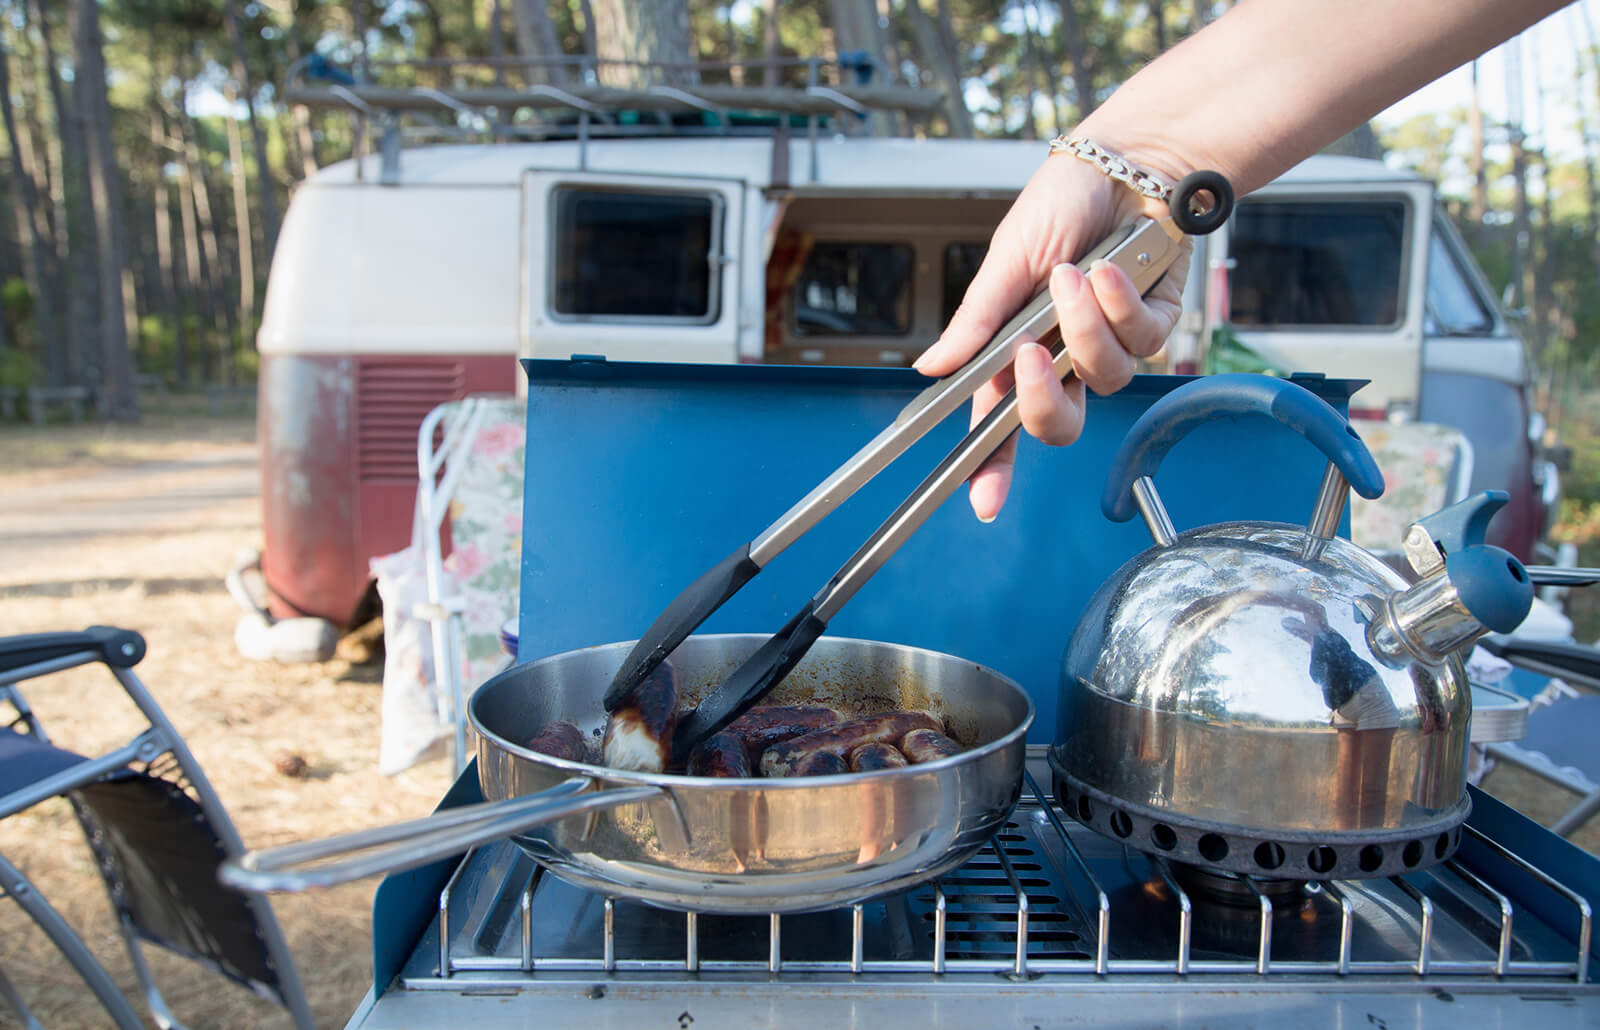 How to Repaint a Coleman Camp Stove | LoveToKnow